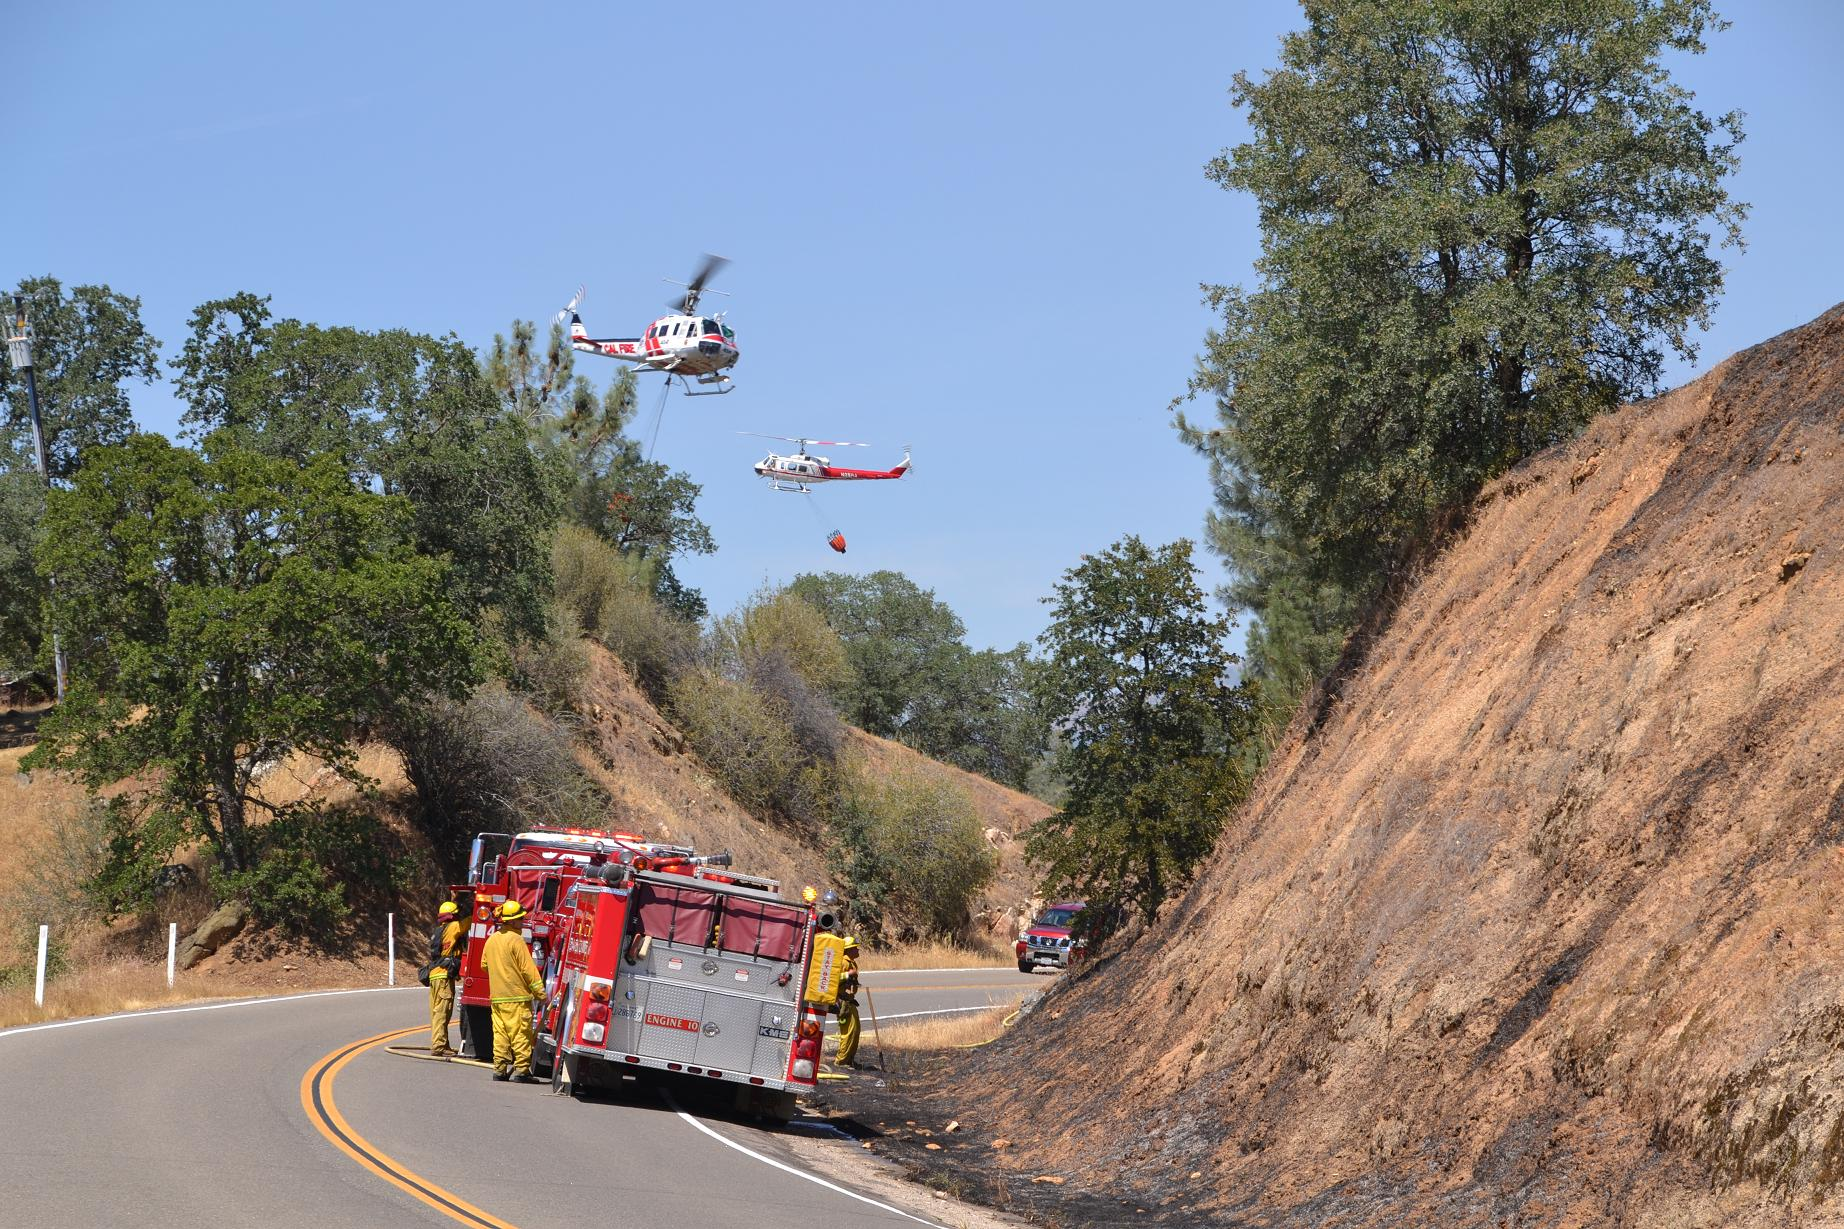 Two helicopters over Engine 10 - photo by Gina Clugston